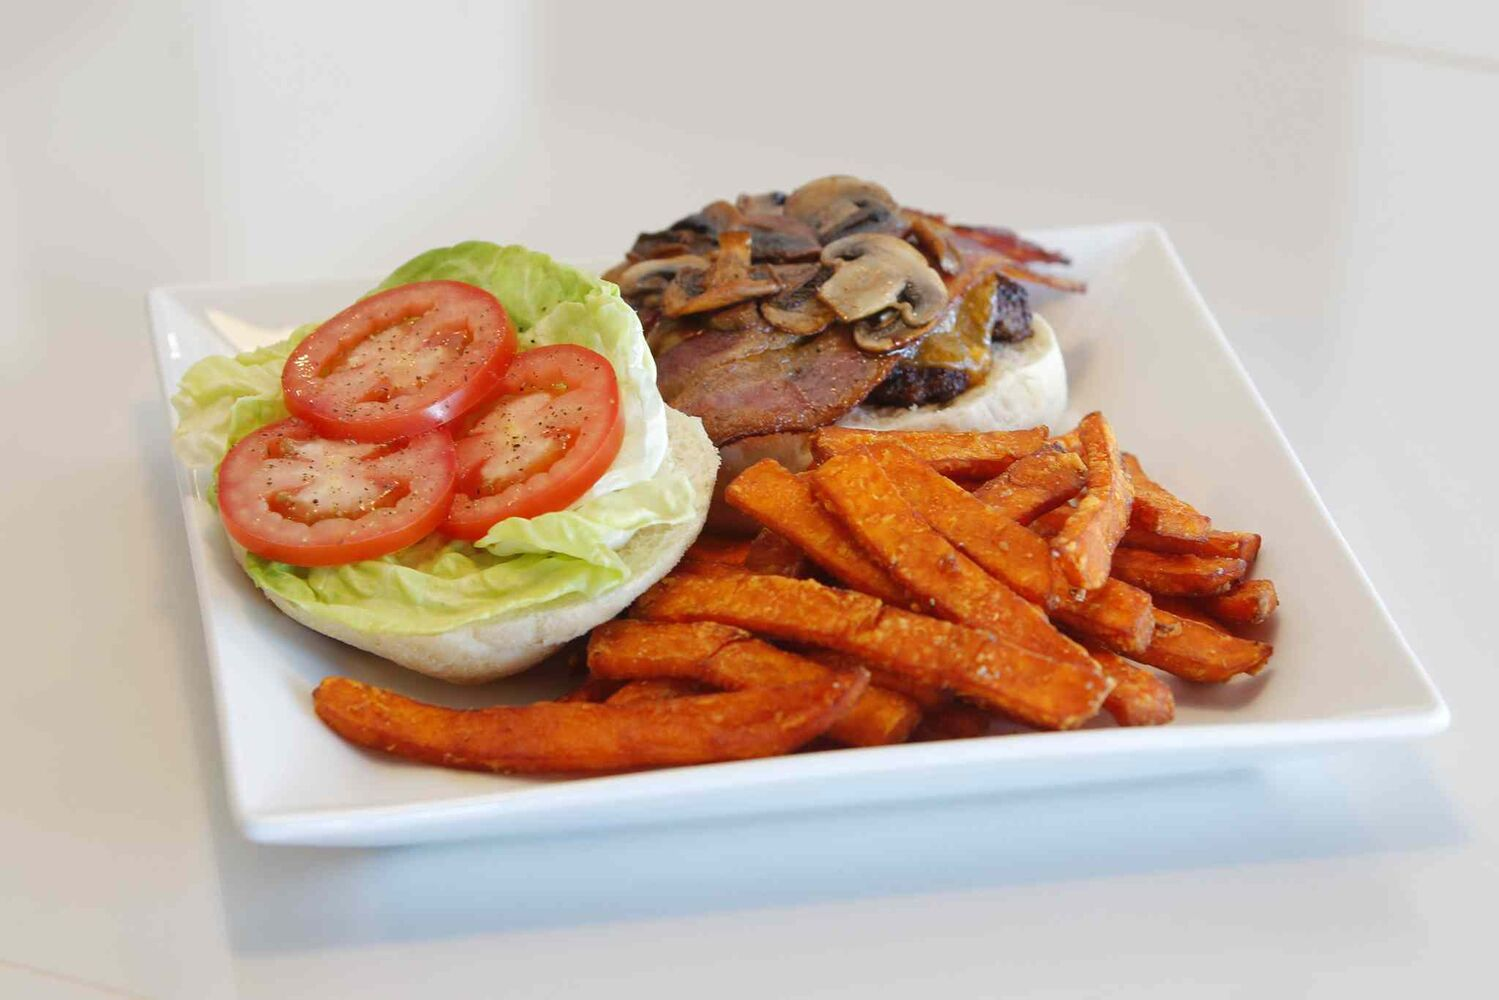 Burger and yam fries at Marion Street Eatery. (BORIS MINKEVICH / WINNIPEG FREE PRESS)